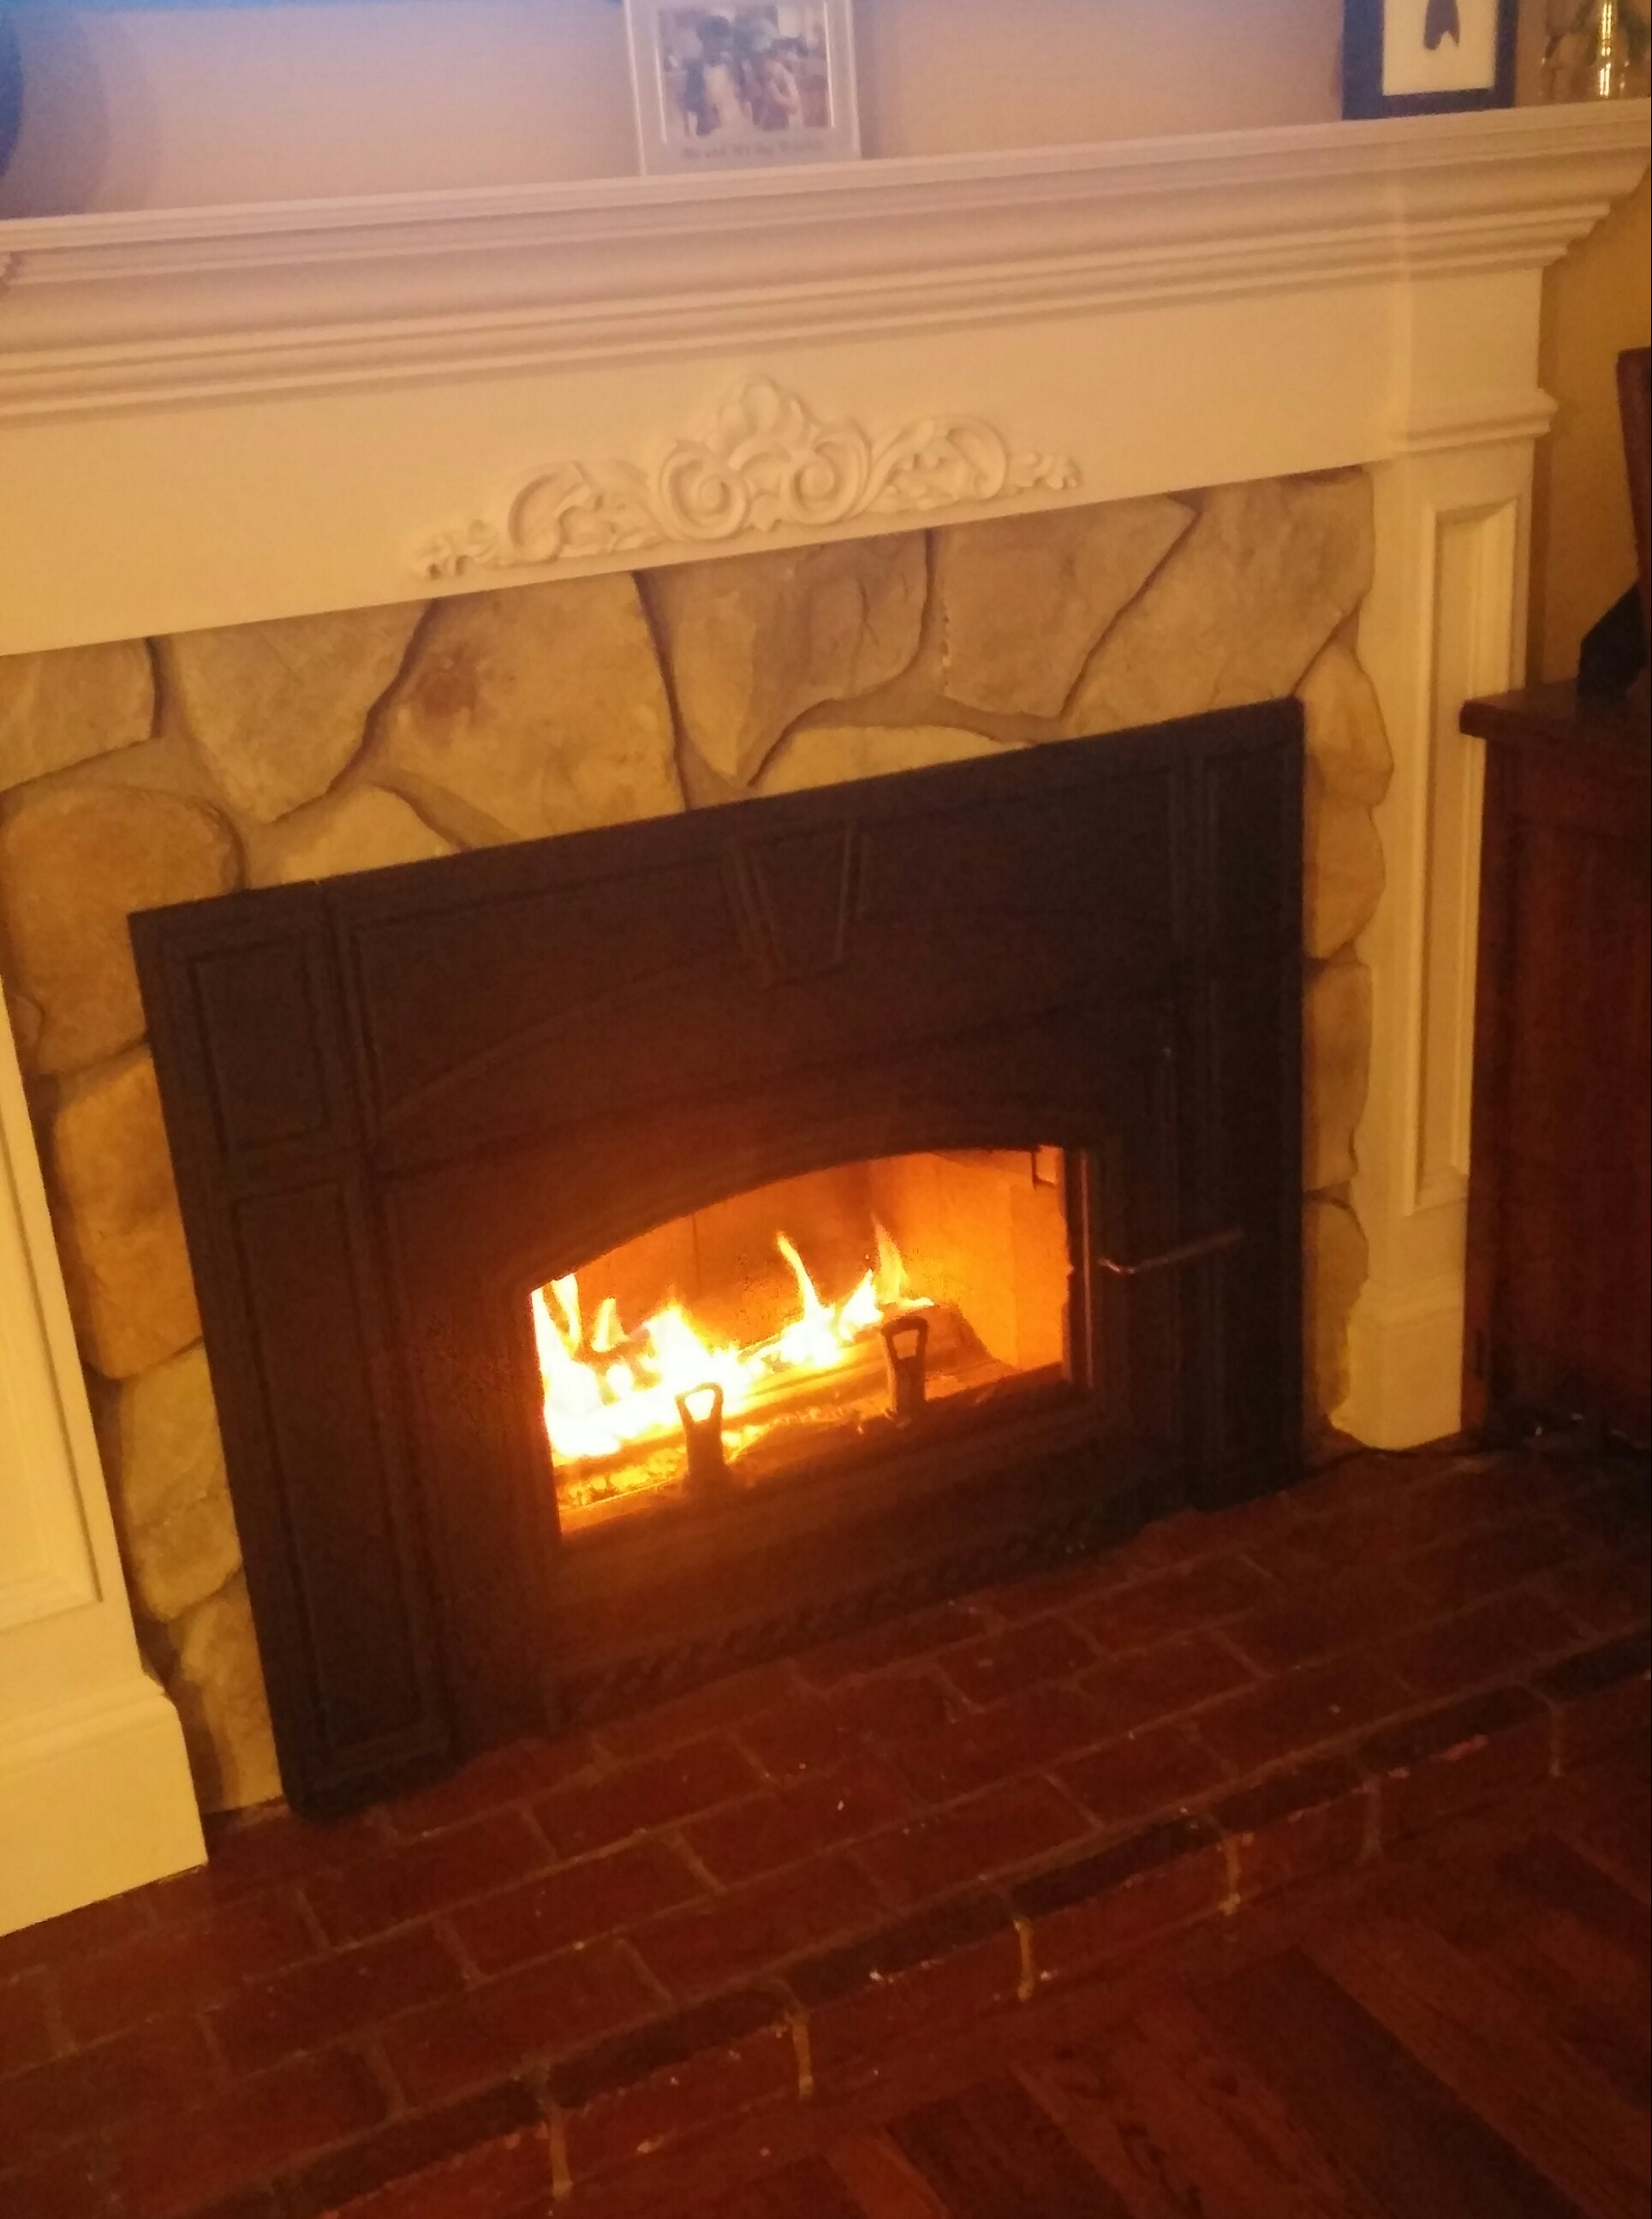 Wood Burning Fireplace Insert Merrick Wantagh Coop Home Purchase Long Island New York